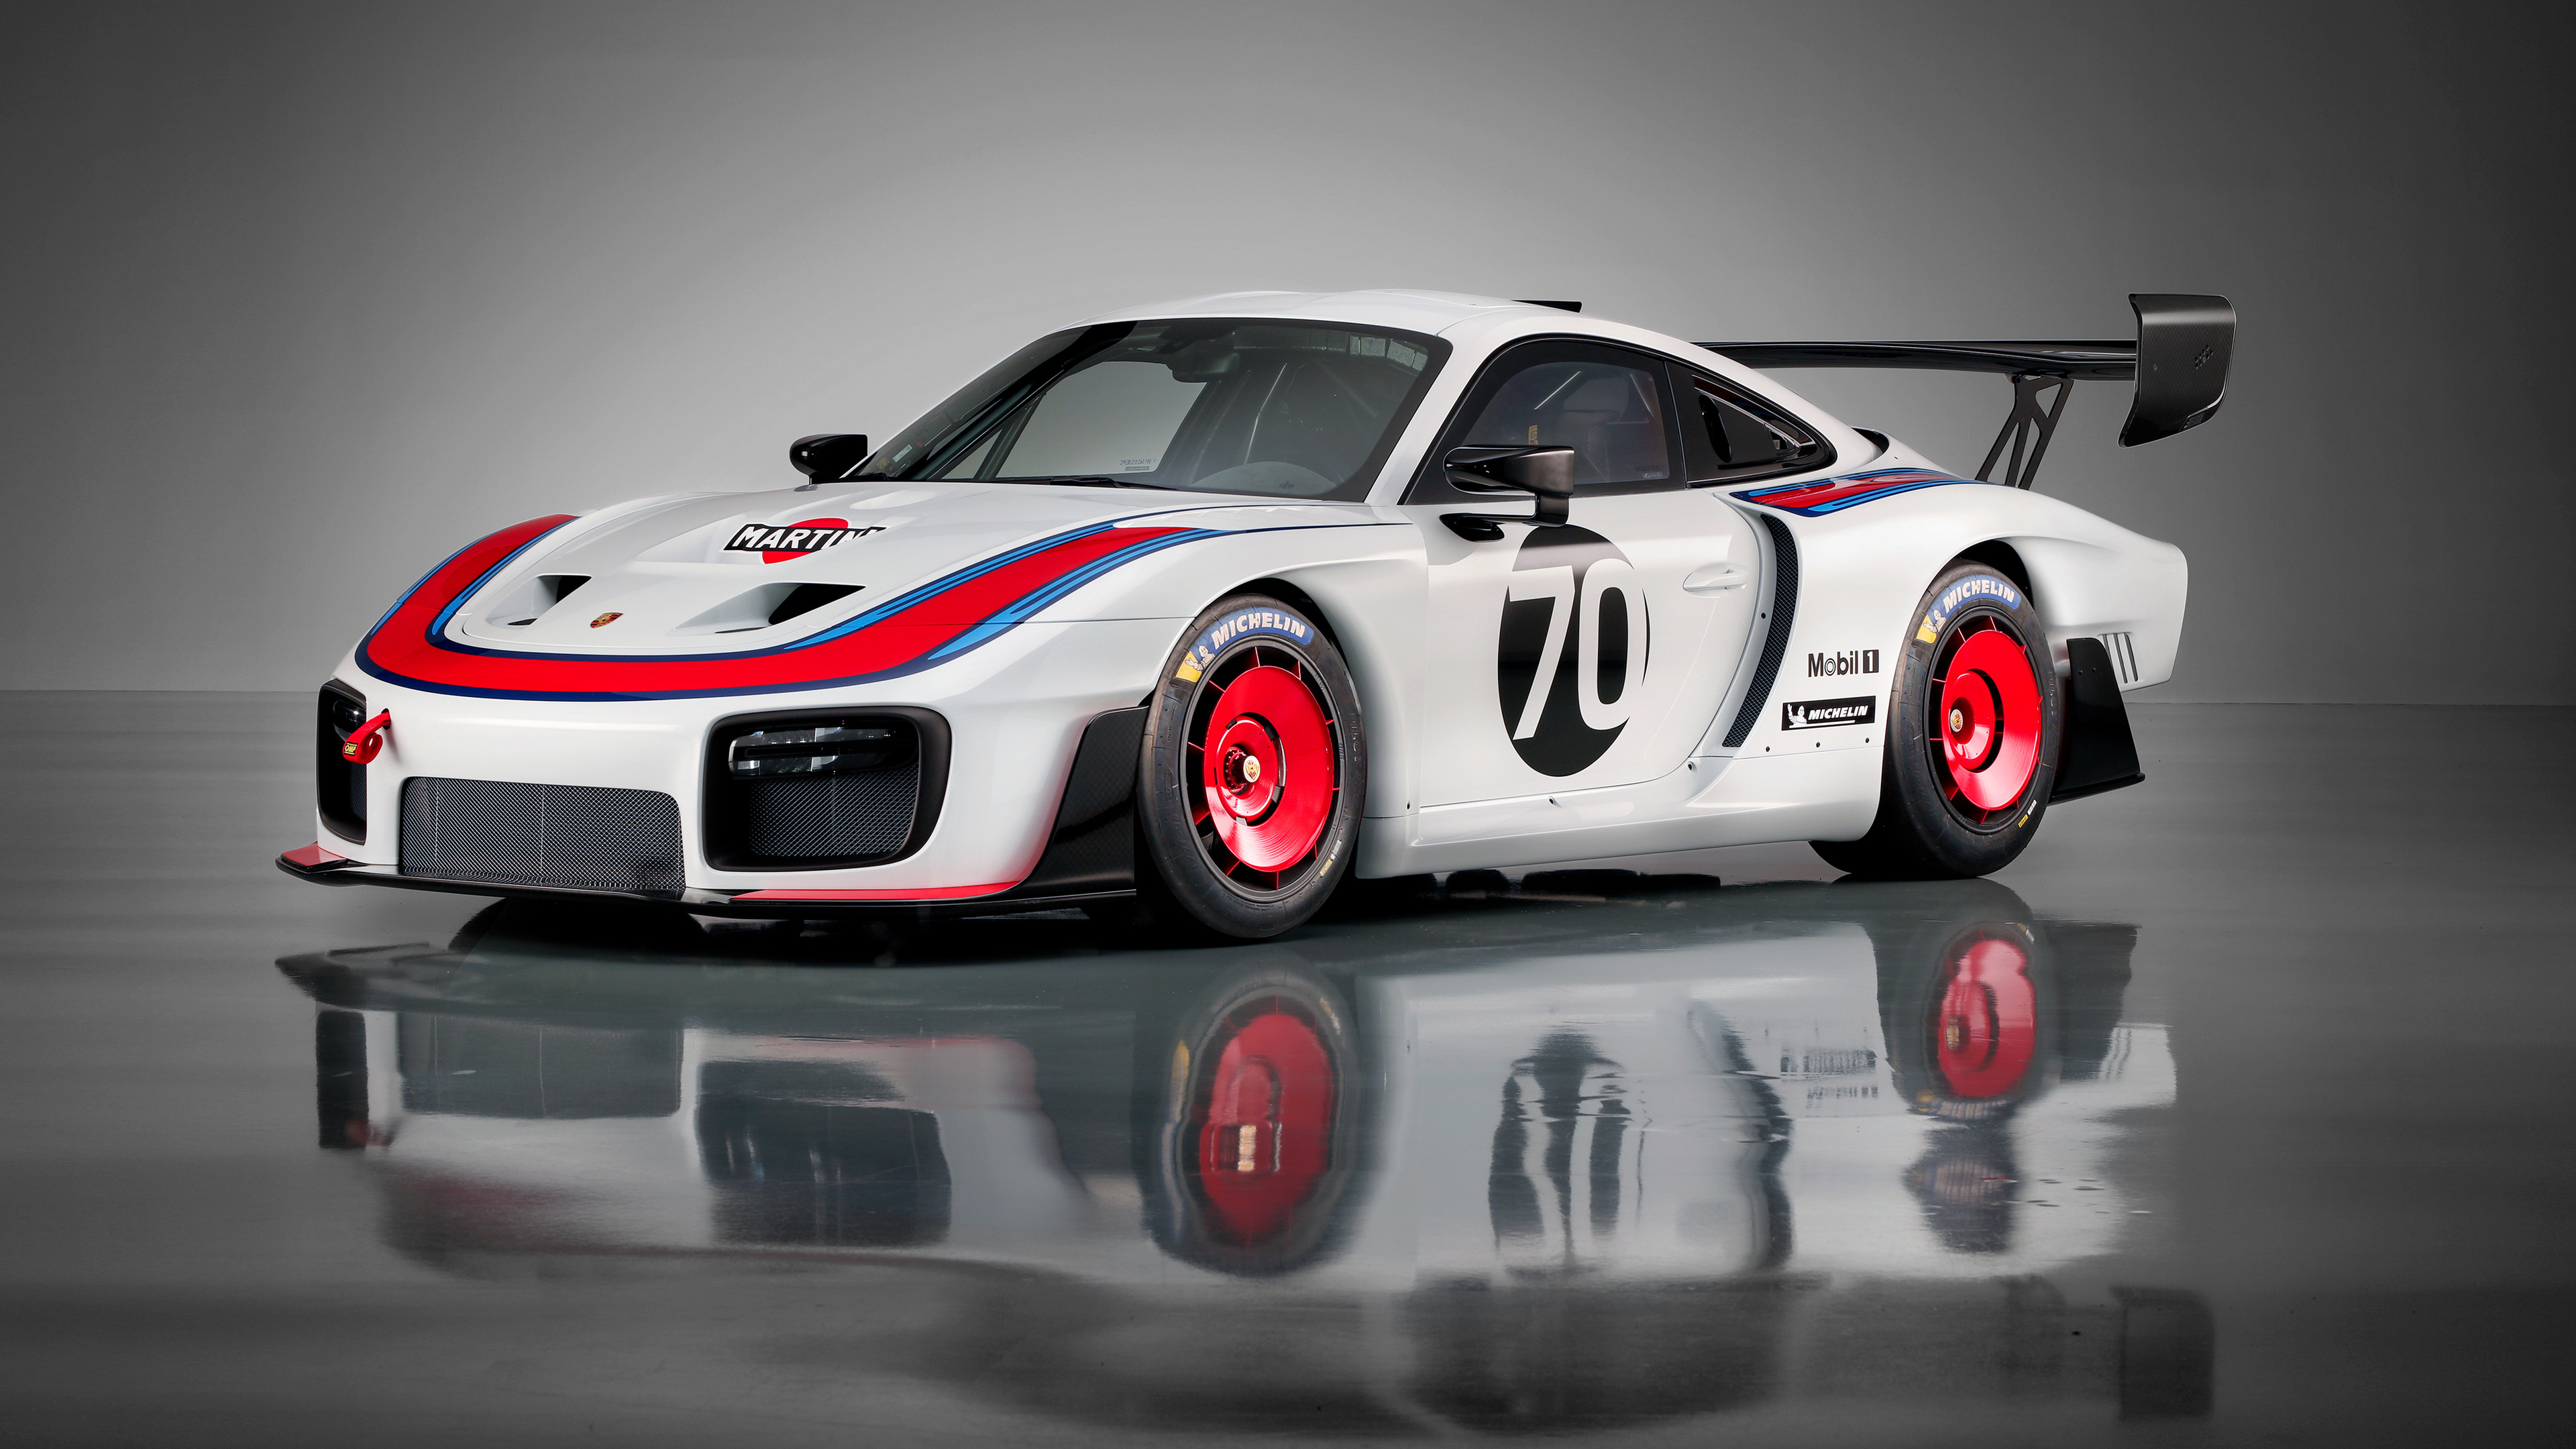 porsche 935 2019 1539792777 - Porsche 935 2019 - porsche wallpapers, porsche 935 wallpapers, hd-wallpapers, cars wallpapers, 4k-wallpapers, 2019 cars wallpapers